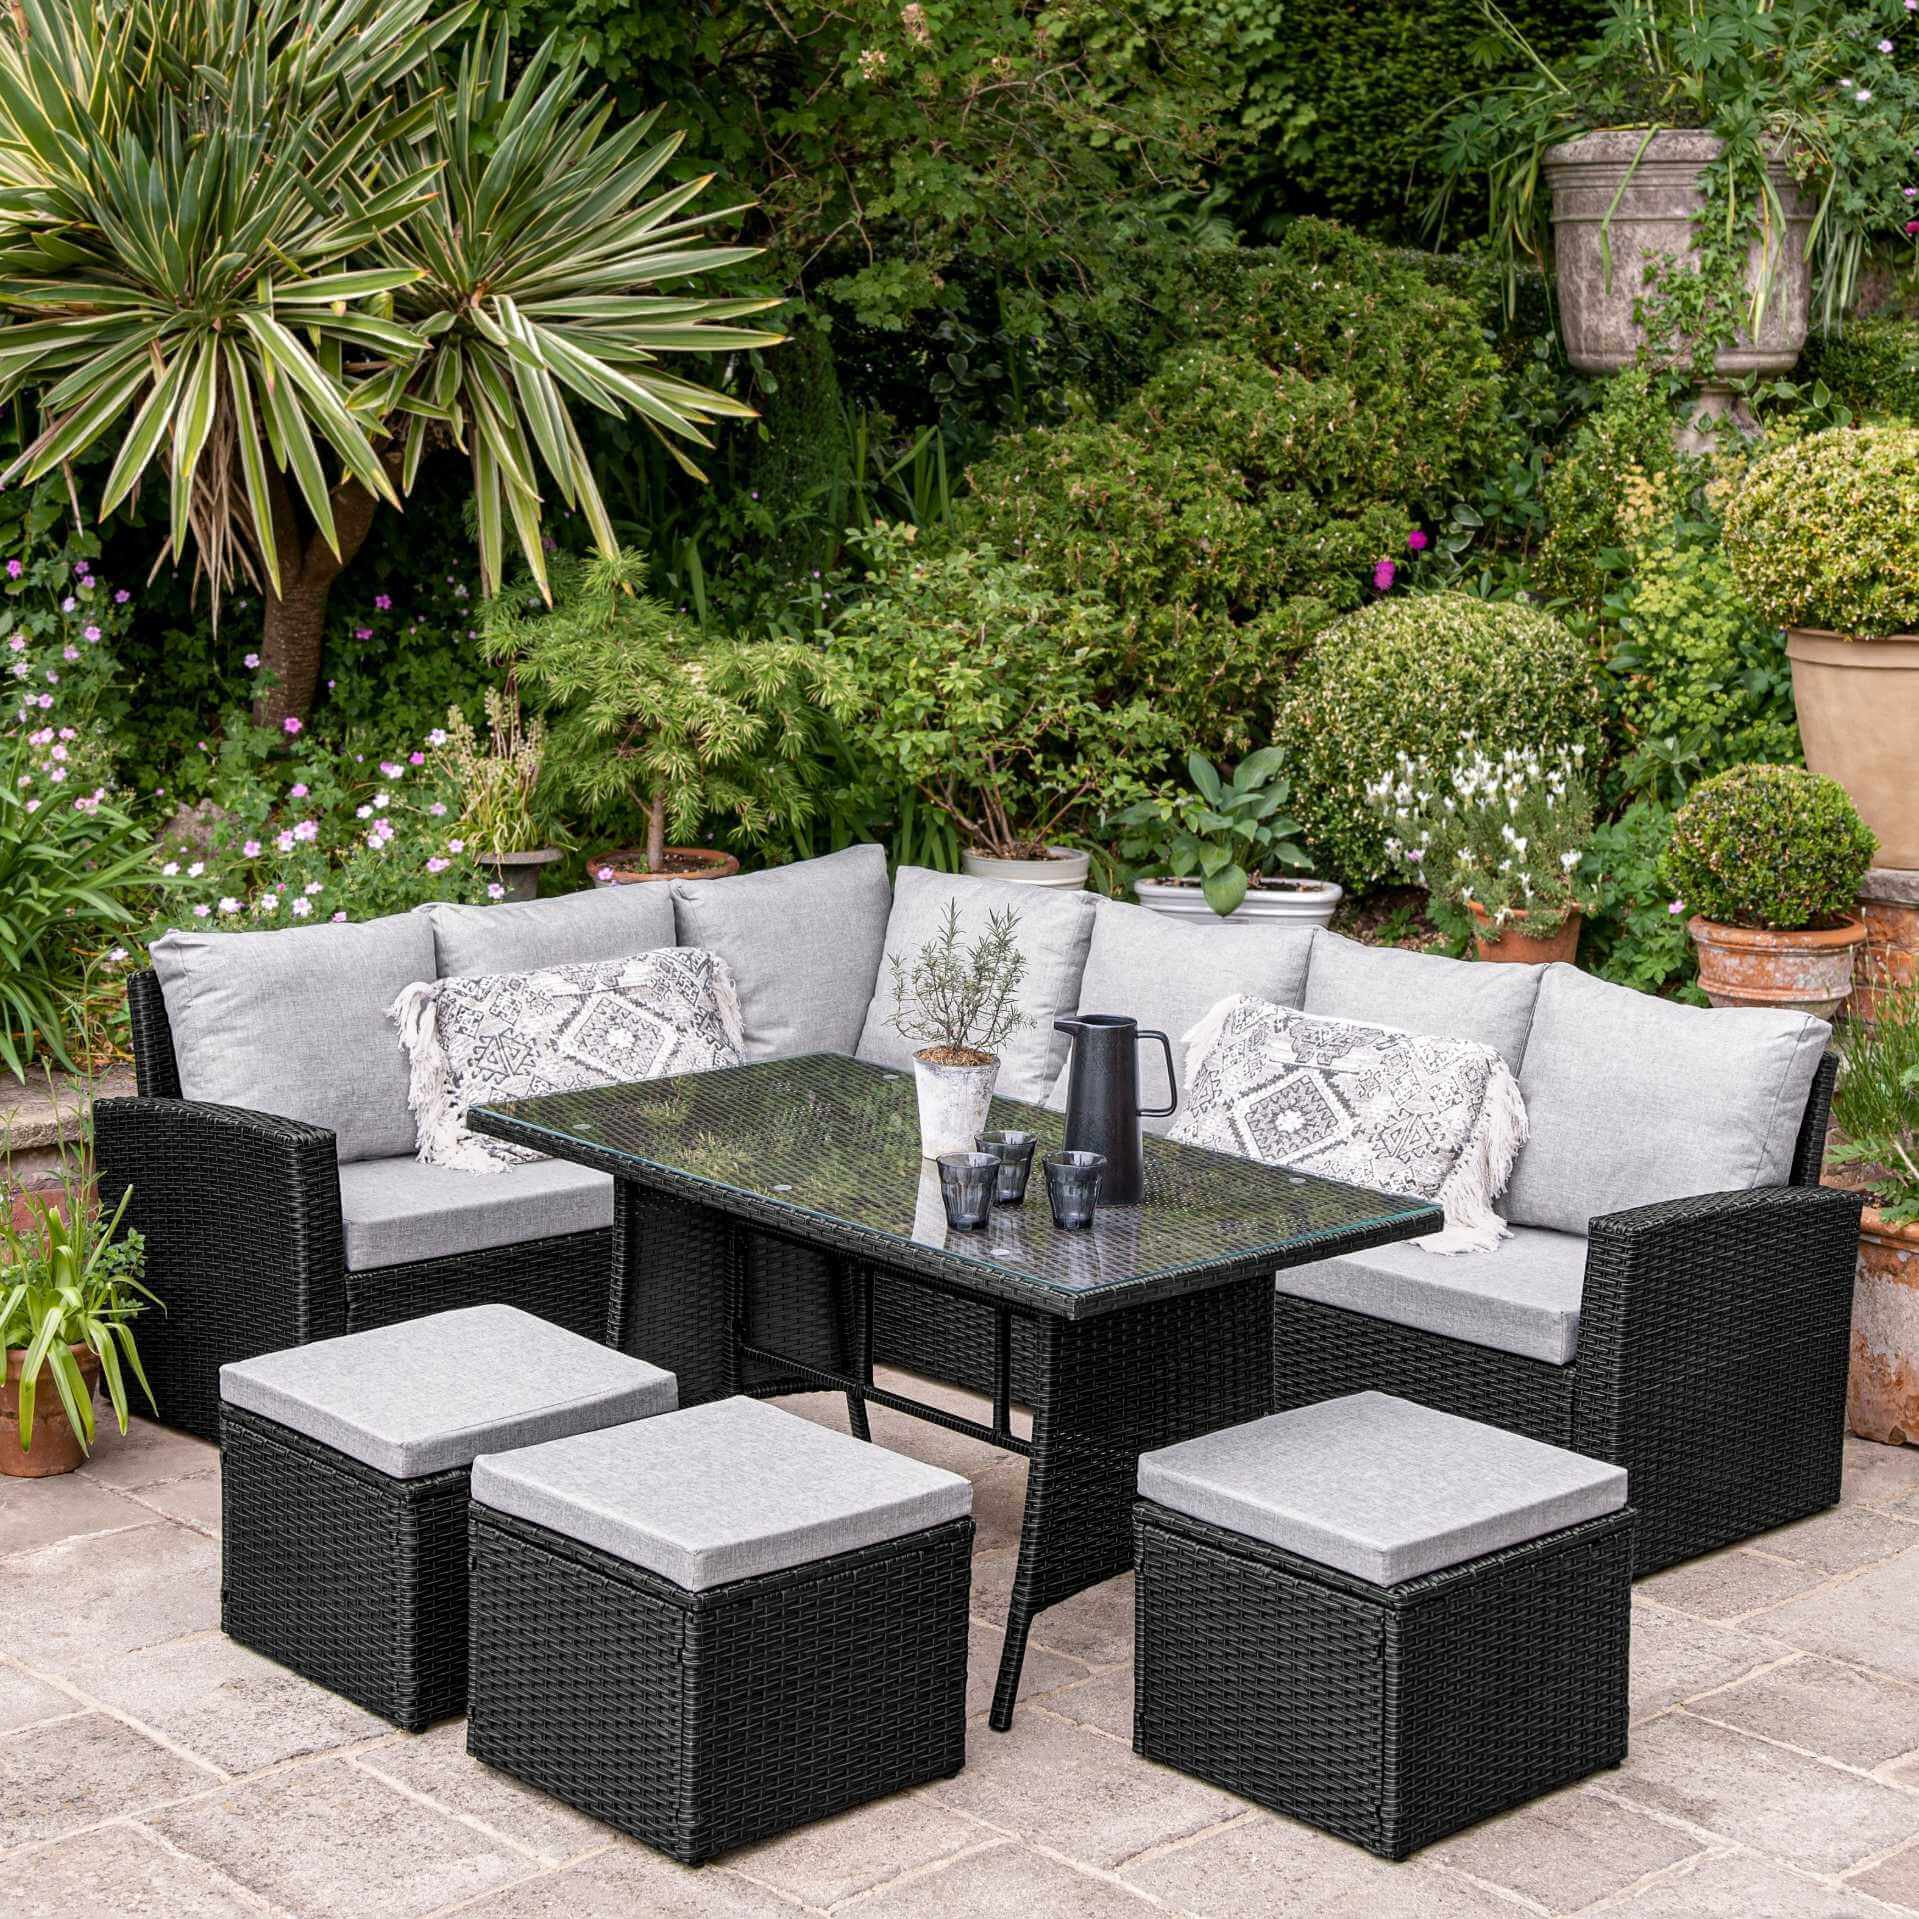 9 Seater Rattan Outdoor Corner Sofa Set - Black Weave - Laura James